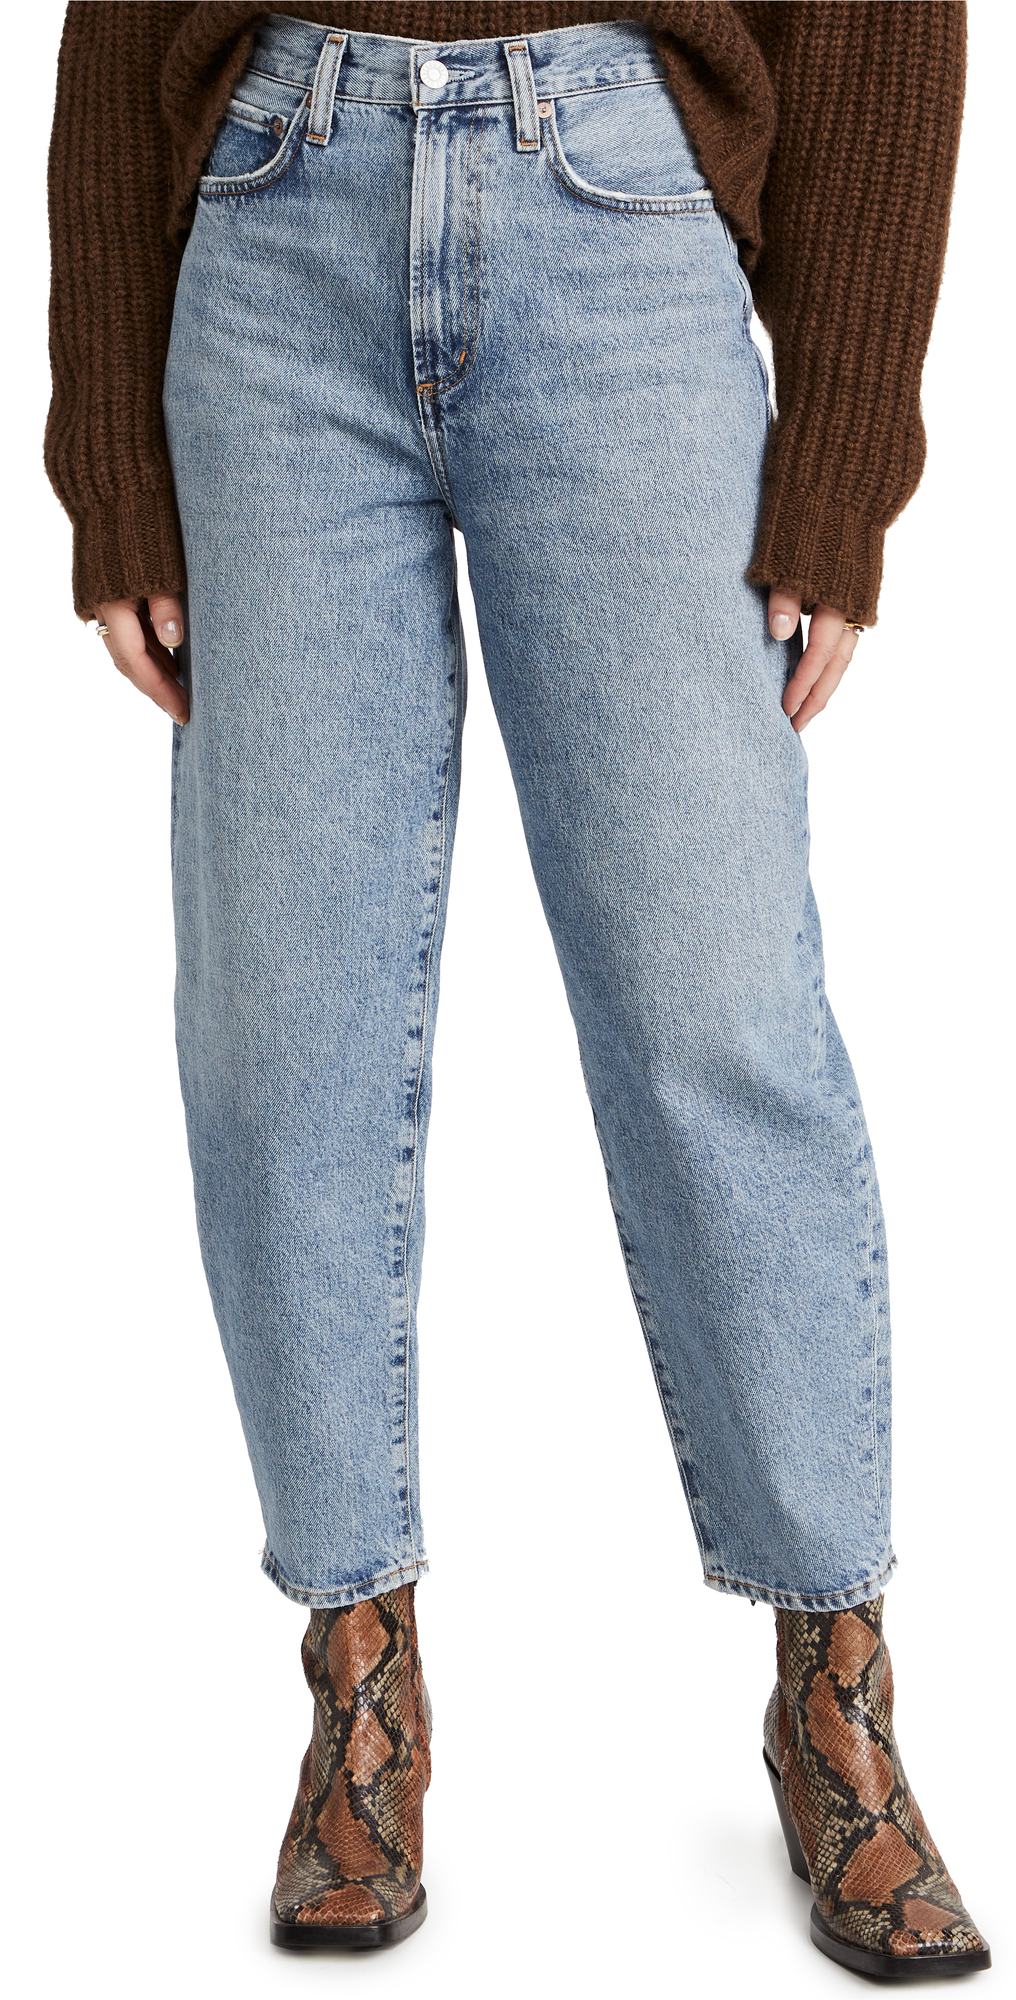 AGOLDE Ultra High Rise Curved Taper Balloon Jeans